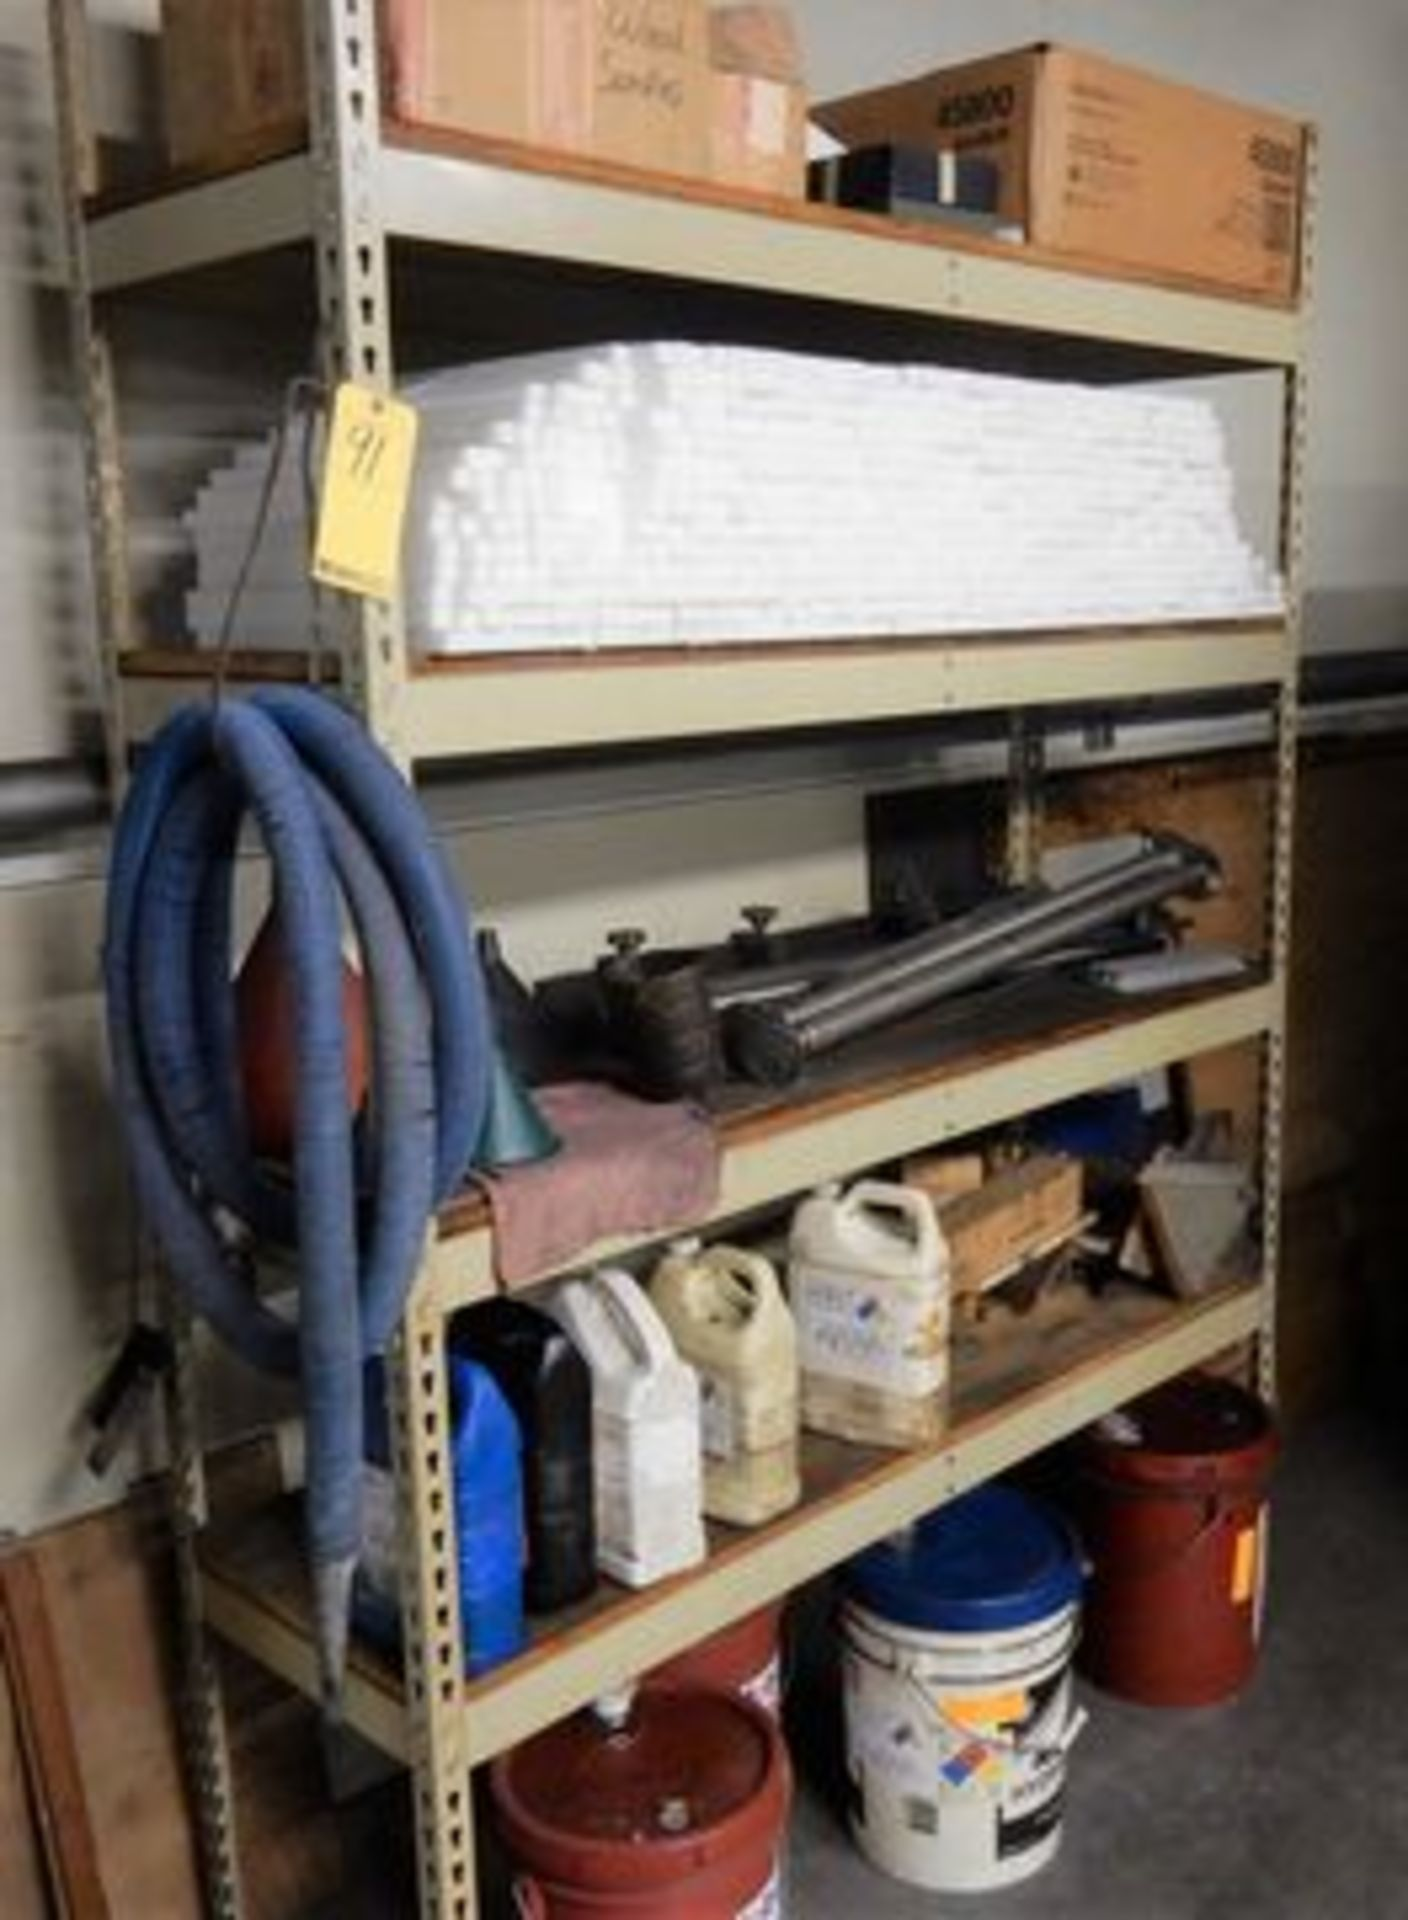 Lot 91 - SHELF CONTENTS TO INCLUDE WOOD SAMPLES & PLASTIC STOCK